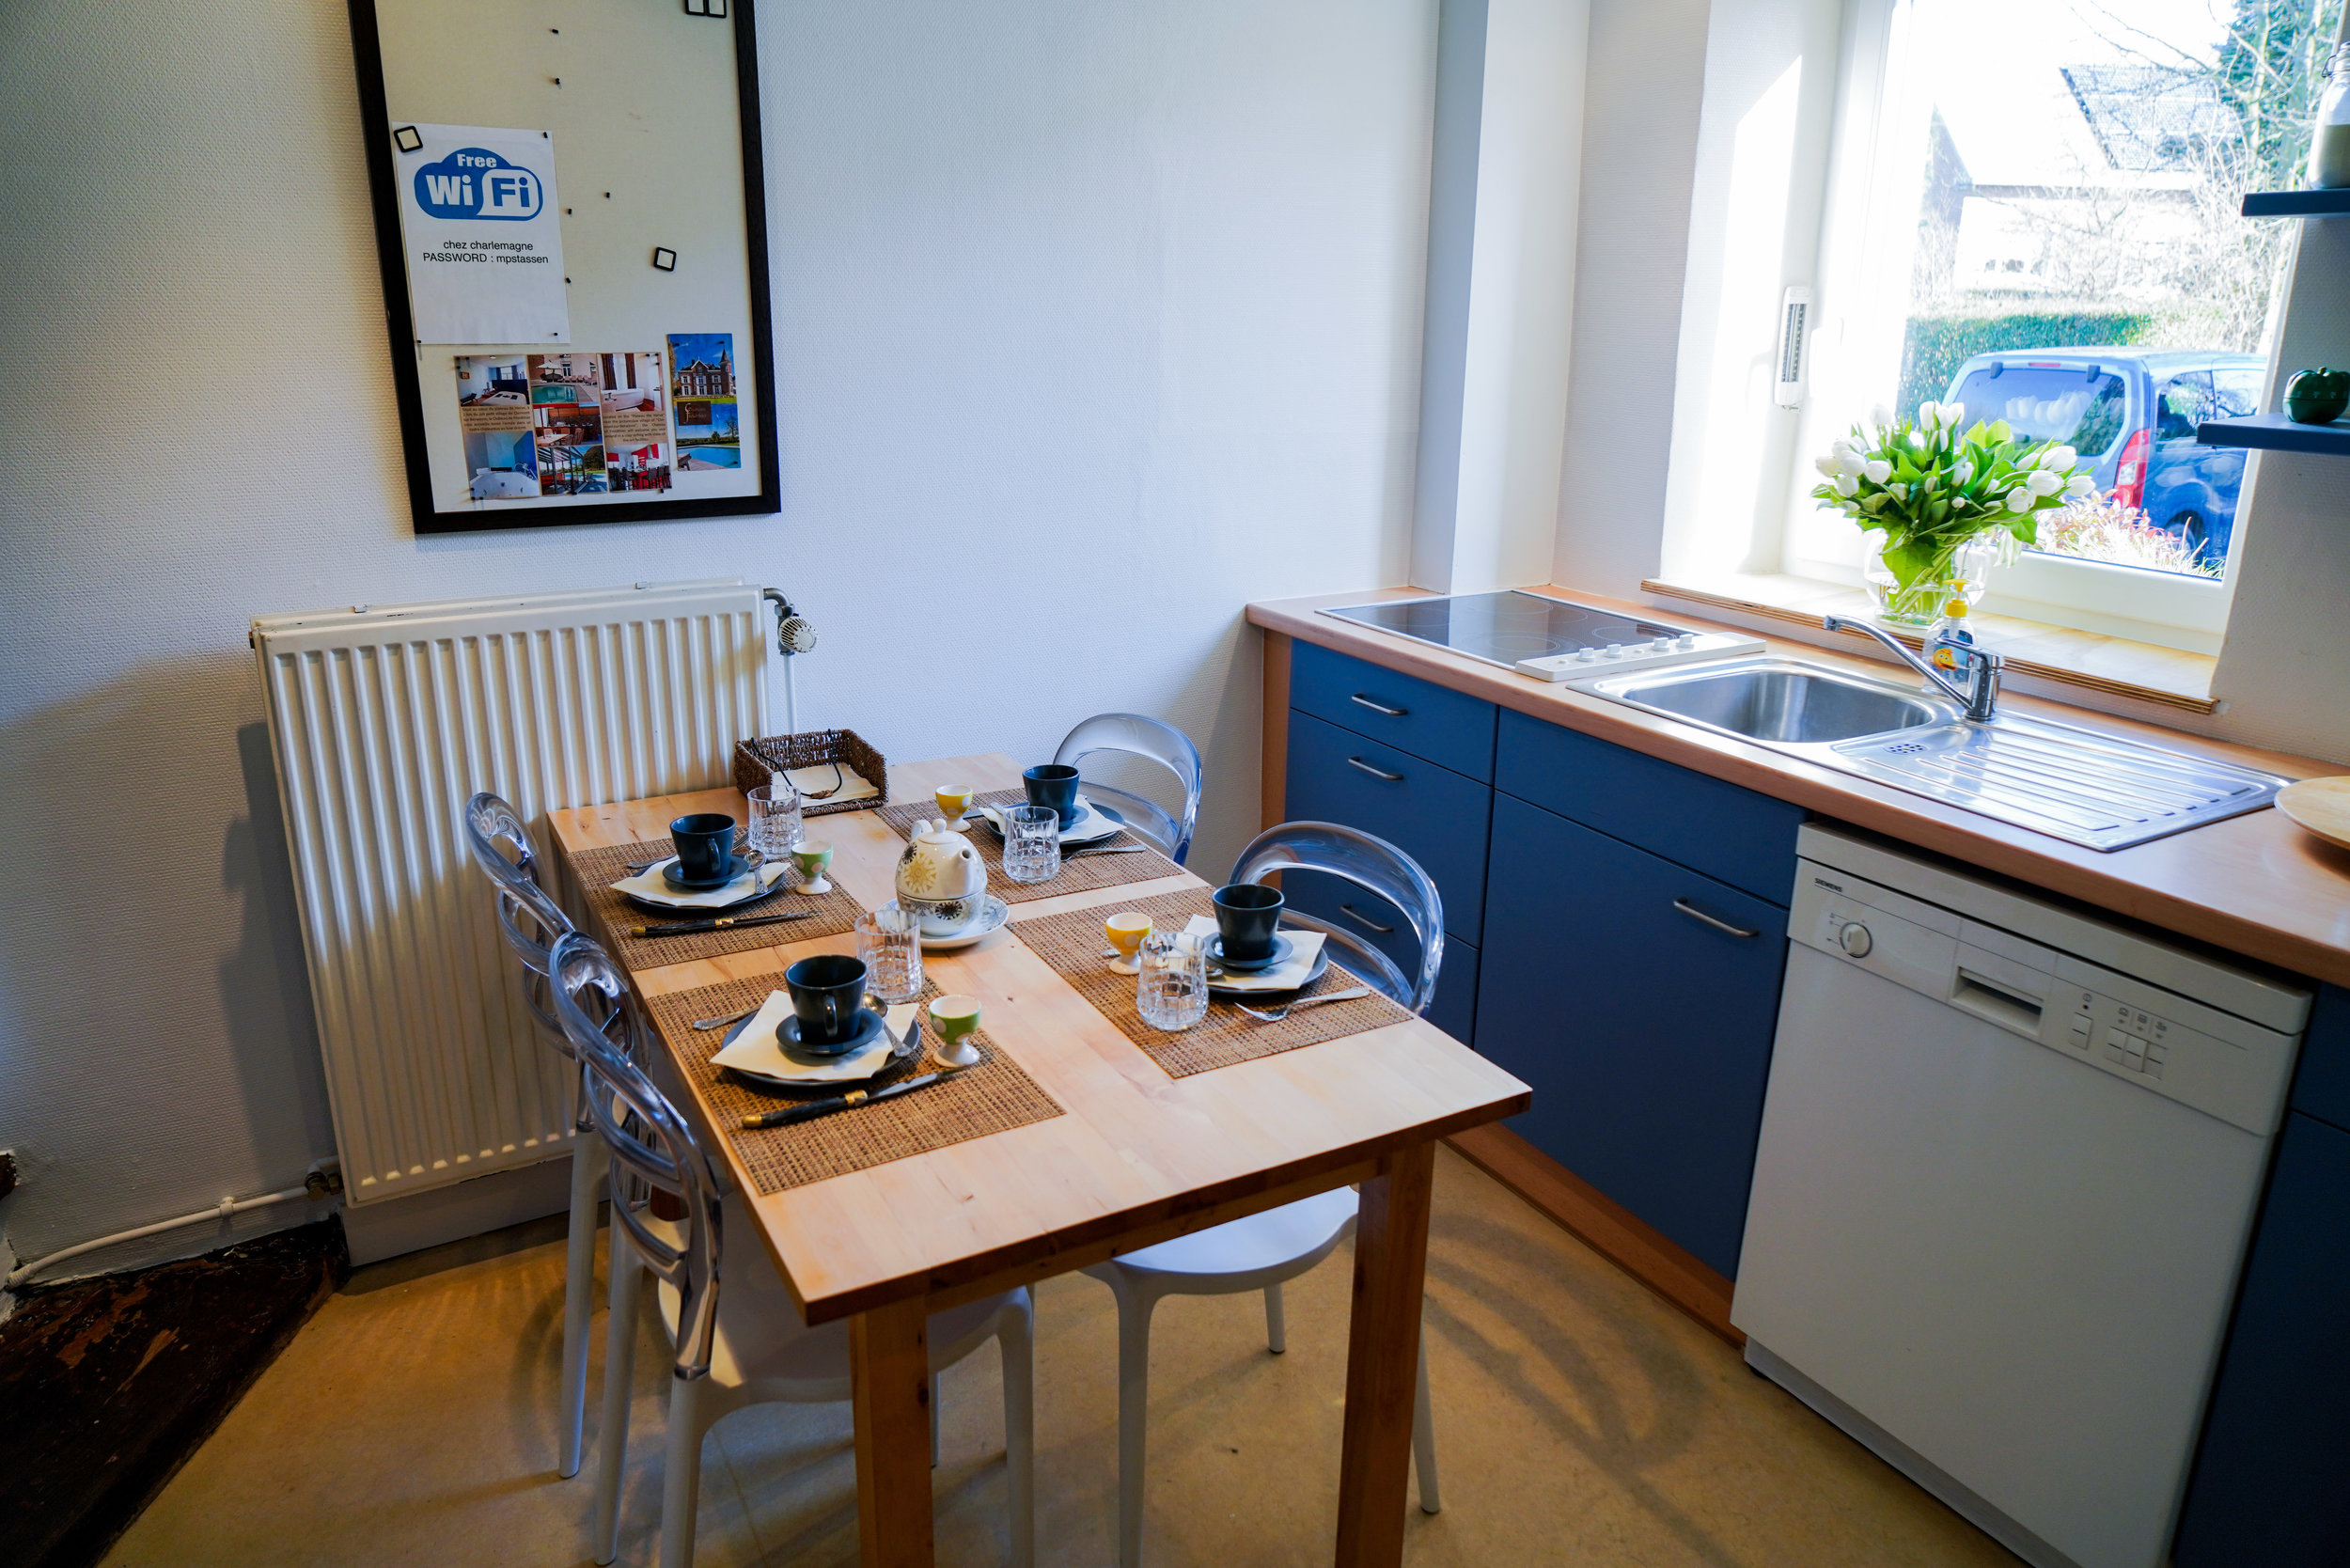 Kitchen - Fully equipped with Micro-wave, fridge, freezer, dish-washer, vitro-ceramic cooktop, toaster,coffee machine, …